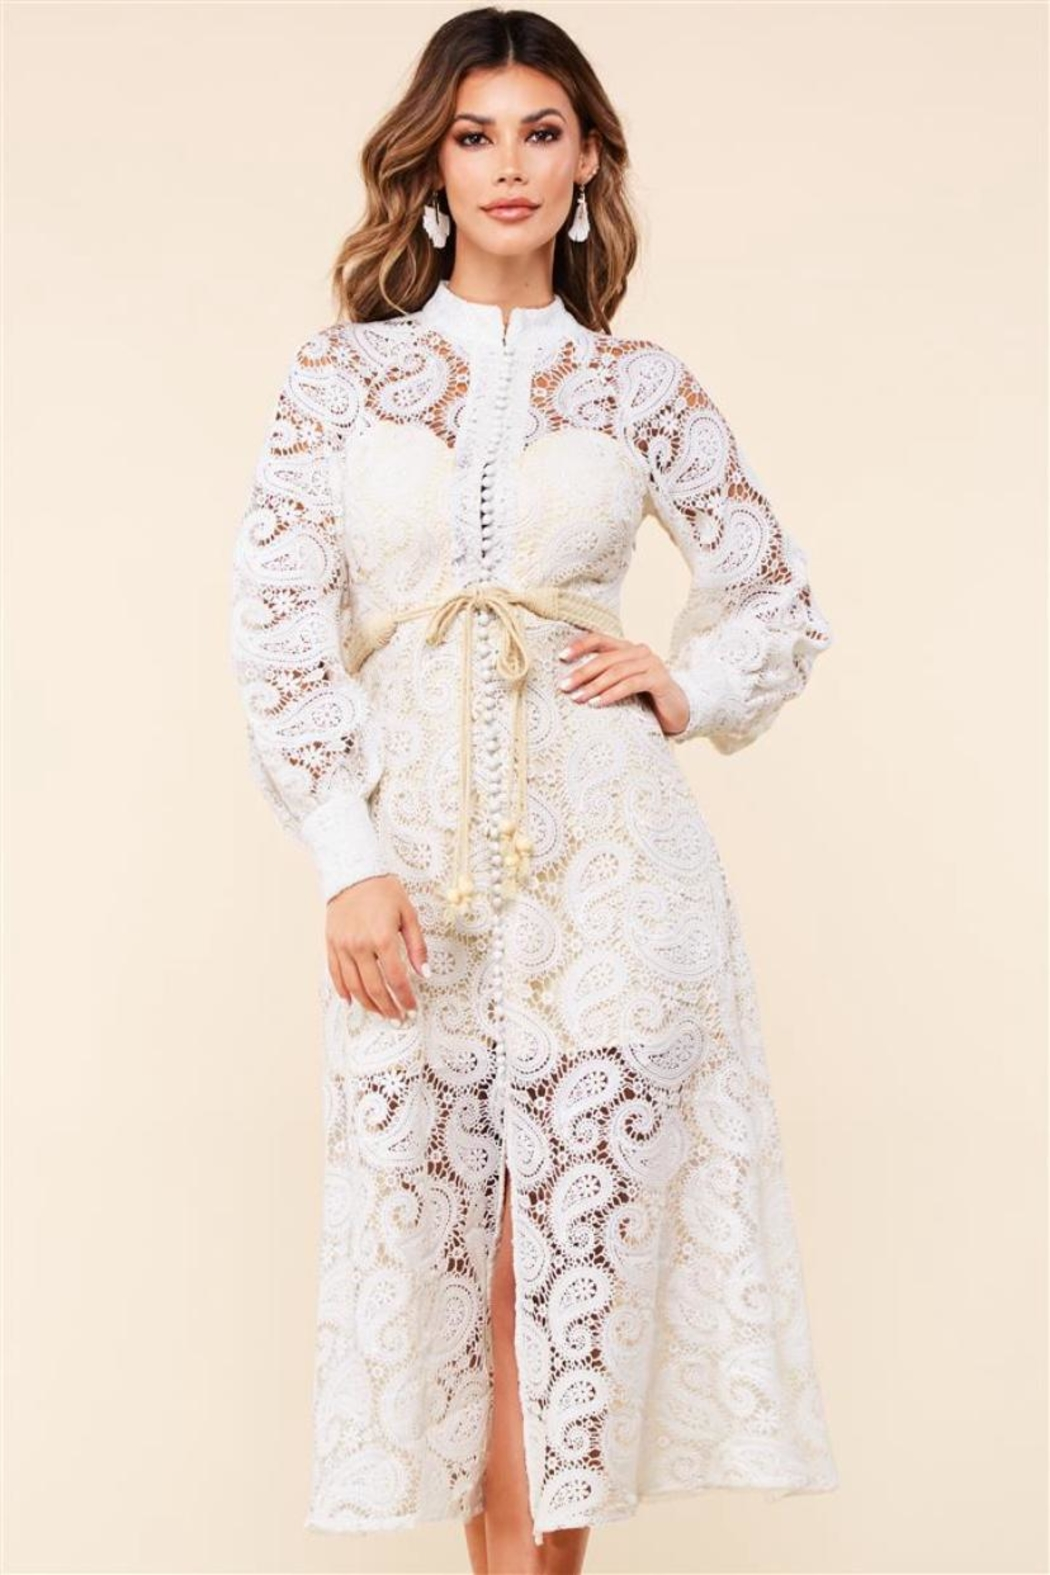 Latiste Button-Down Lace Dress - Main Image